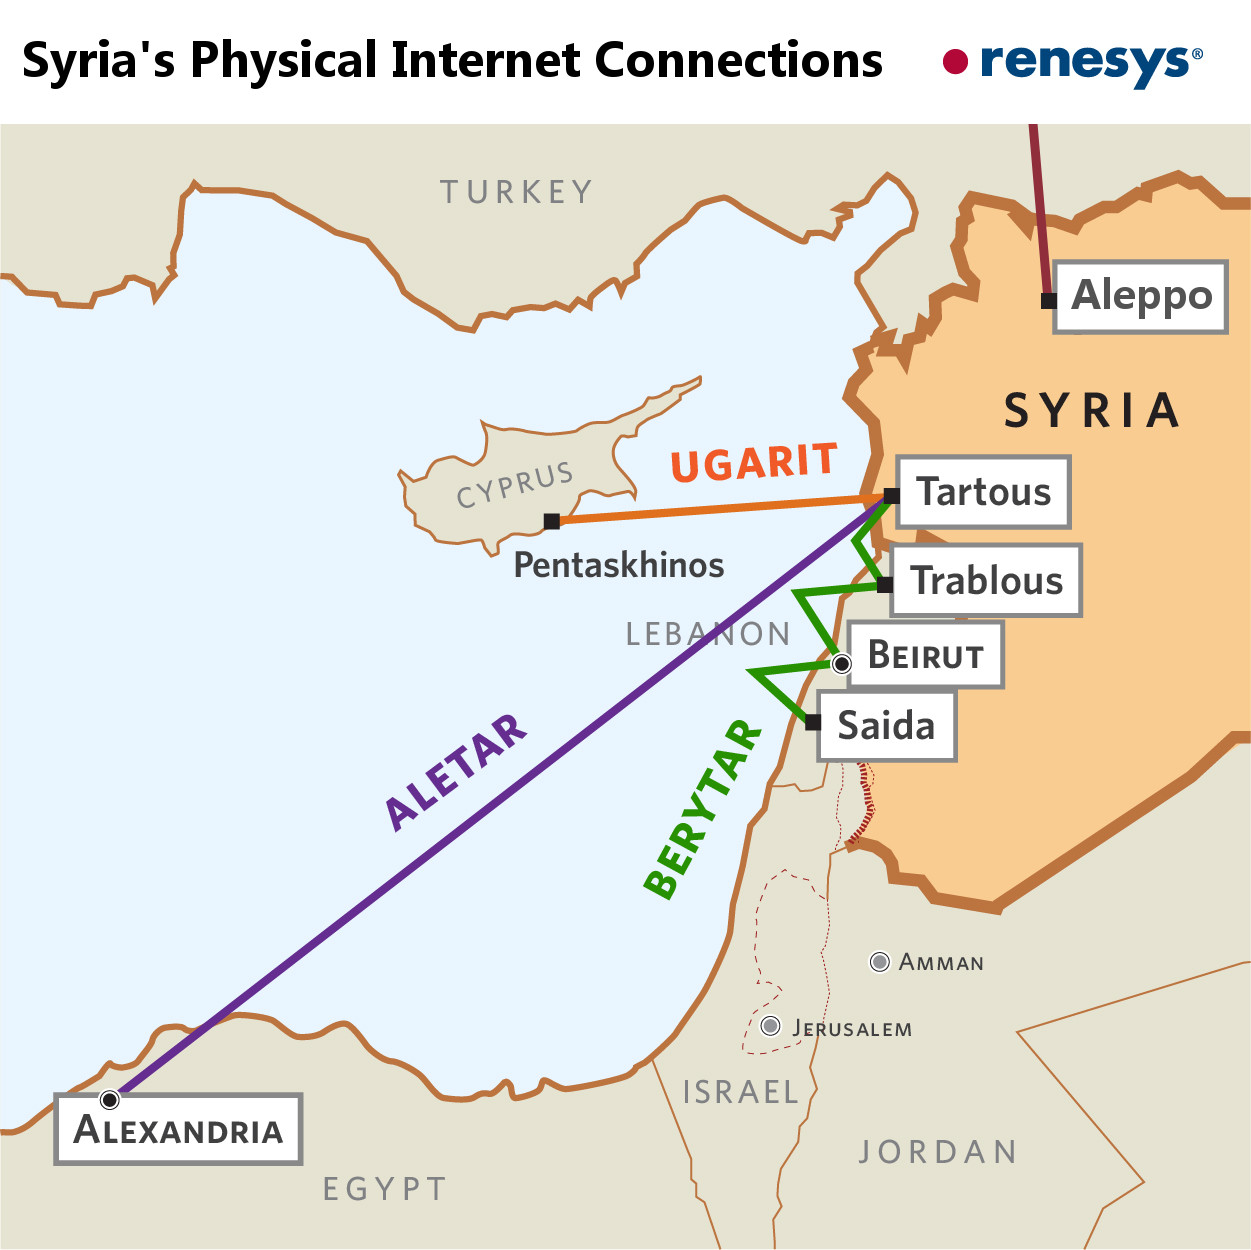 40 Maps That Explain The Internet Fiber Optic Network Wiring Diagram Circuit Diagrams Syrias Largest City Dropped Off In 2013